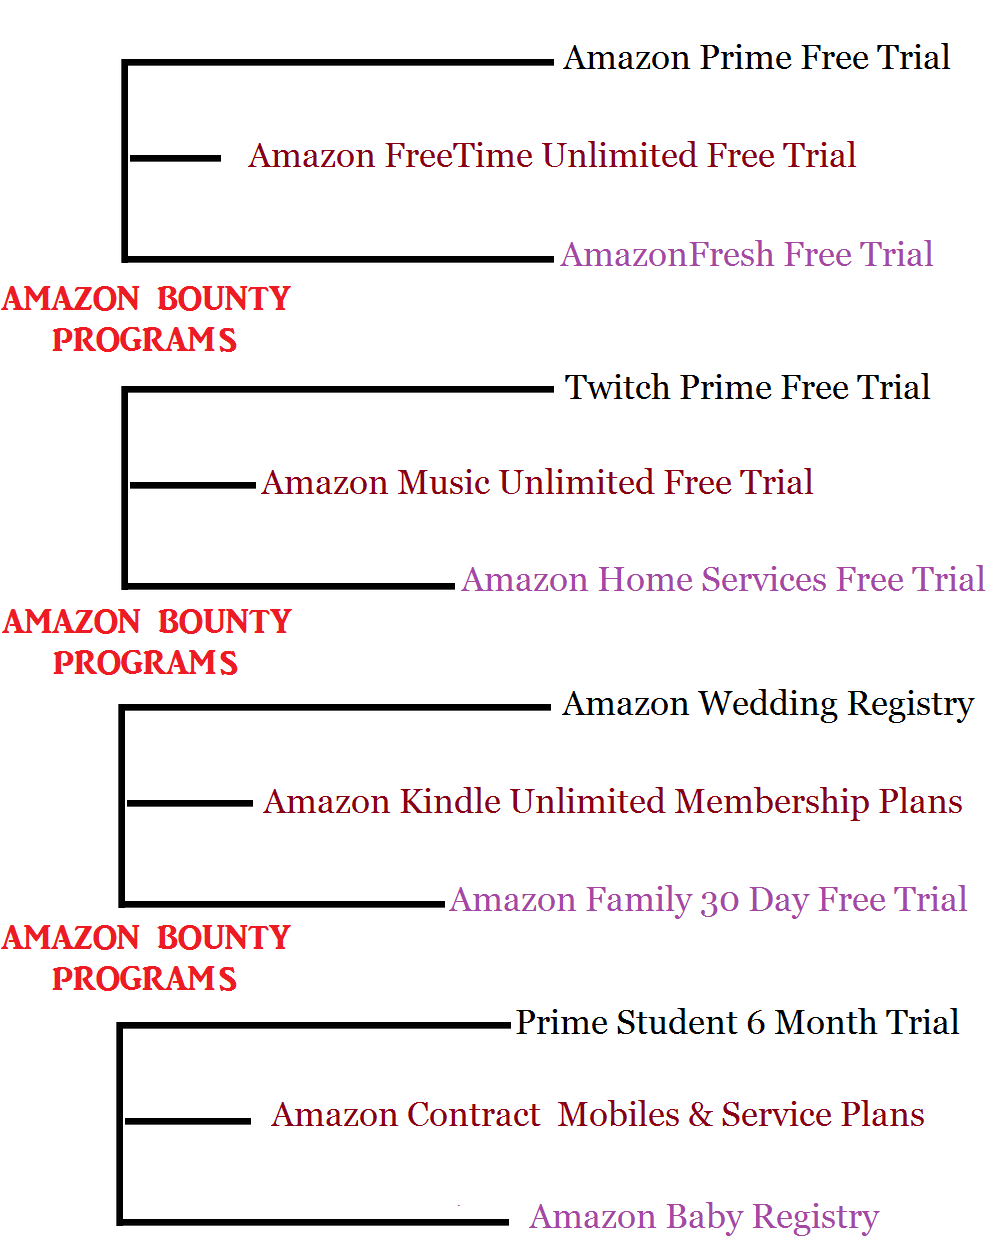 What is Amazon Bounty Program?